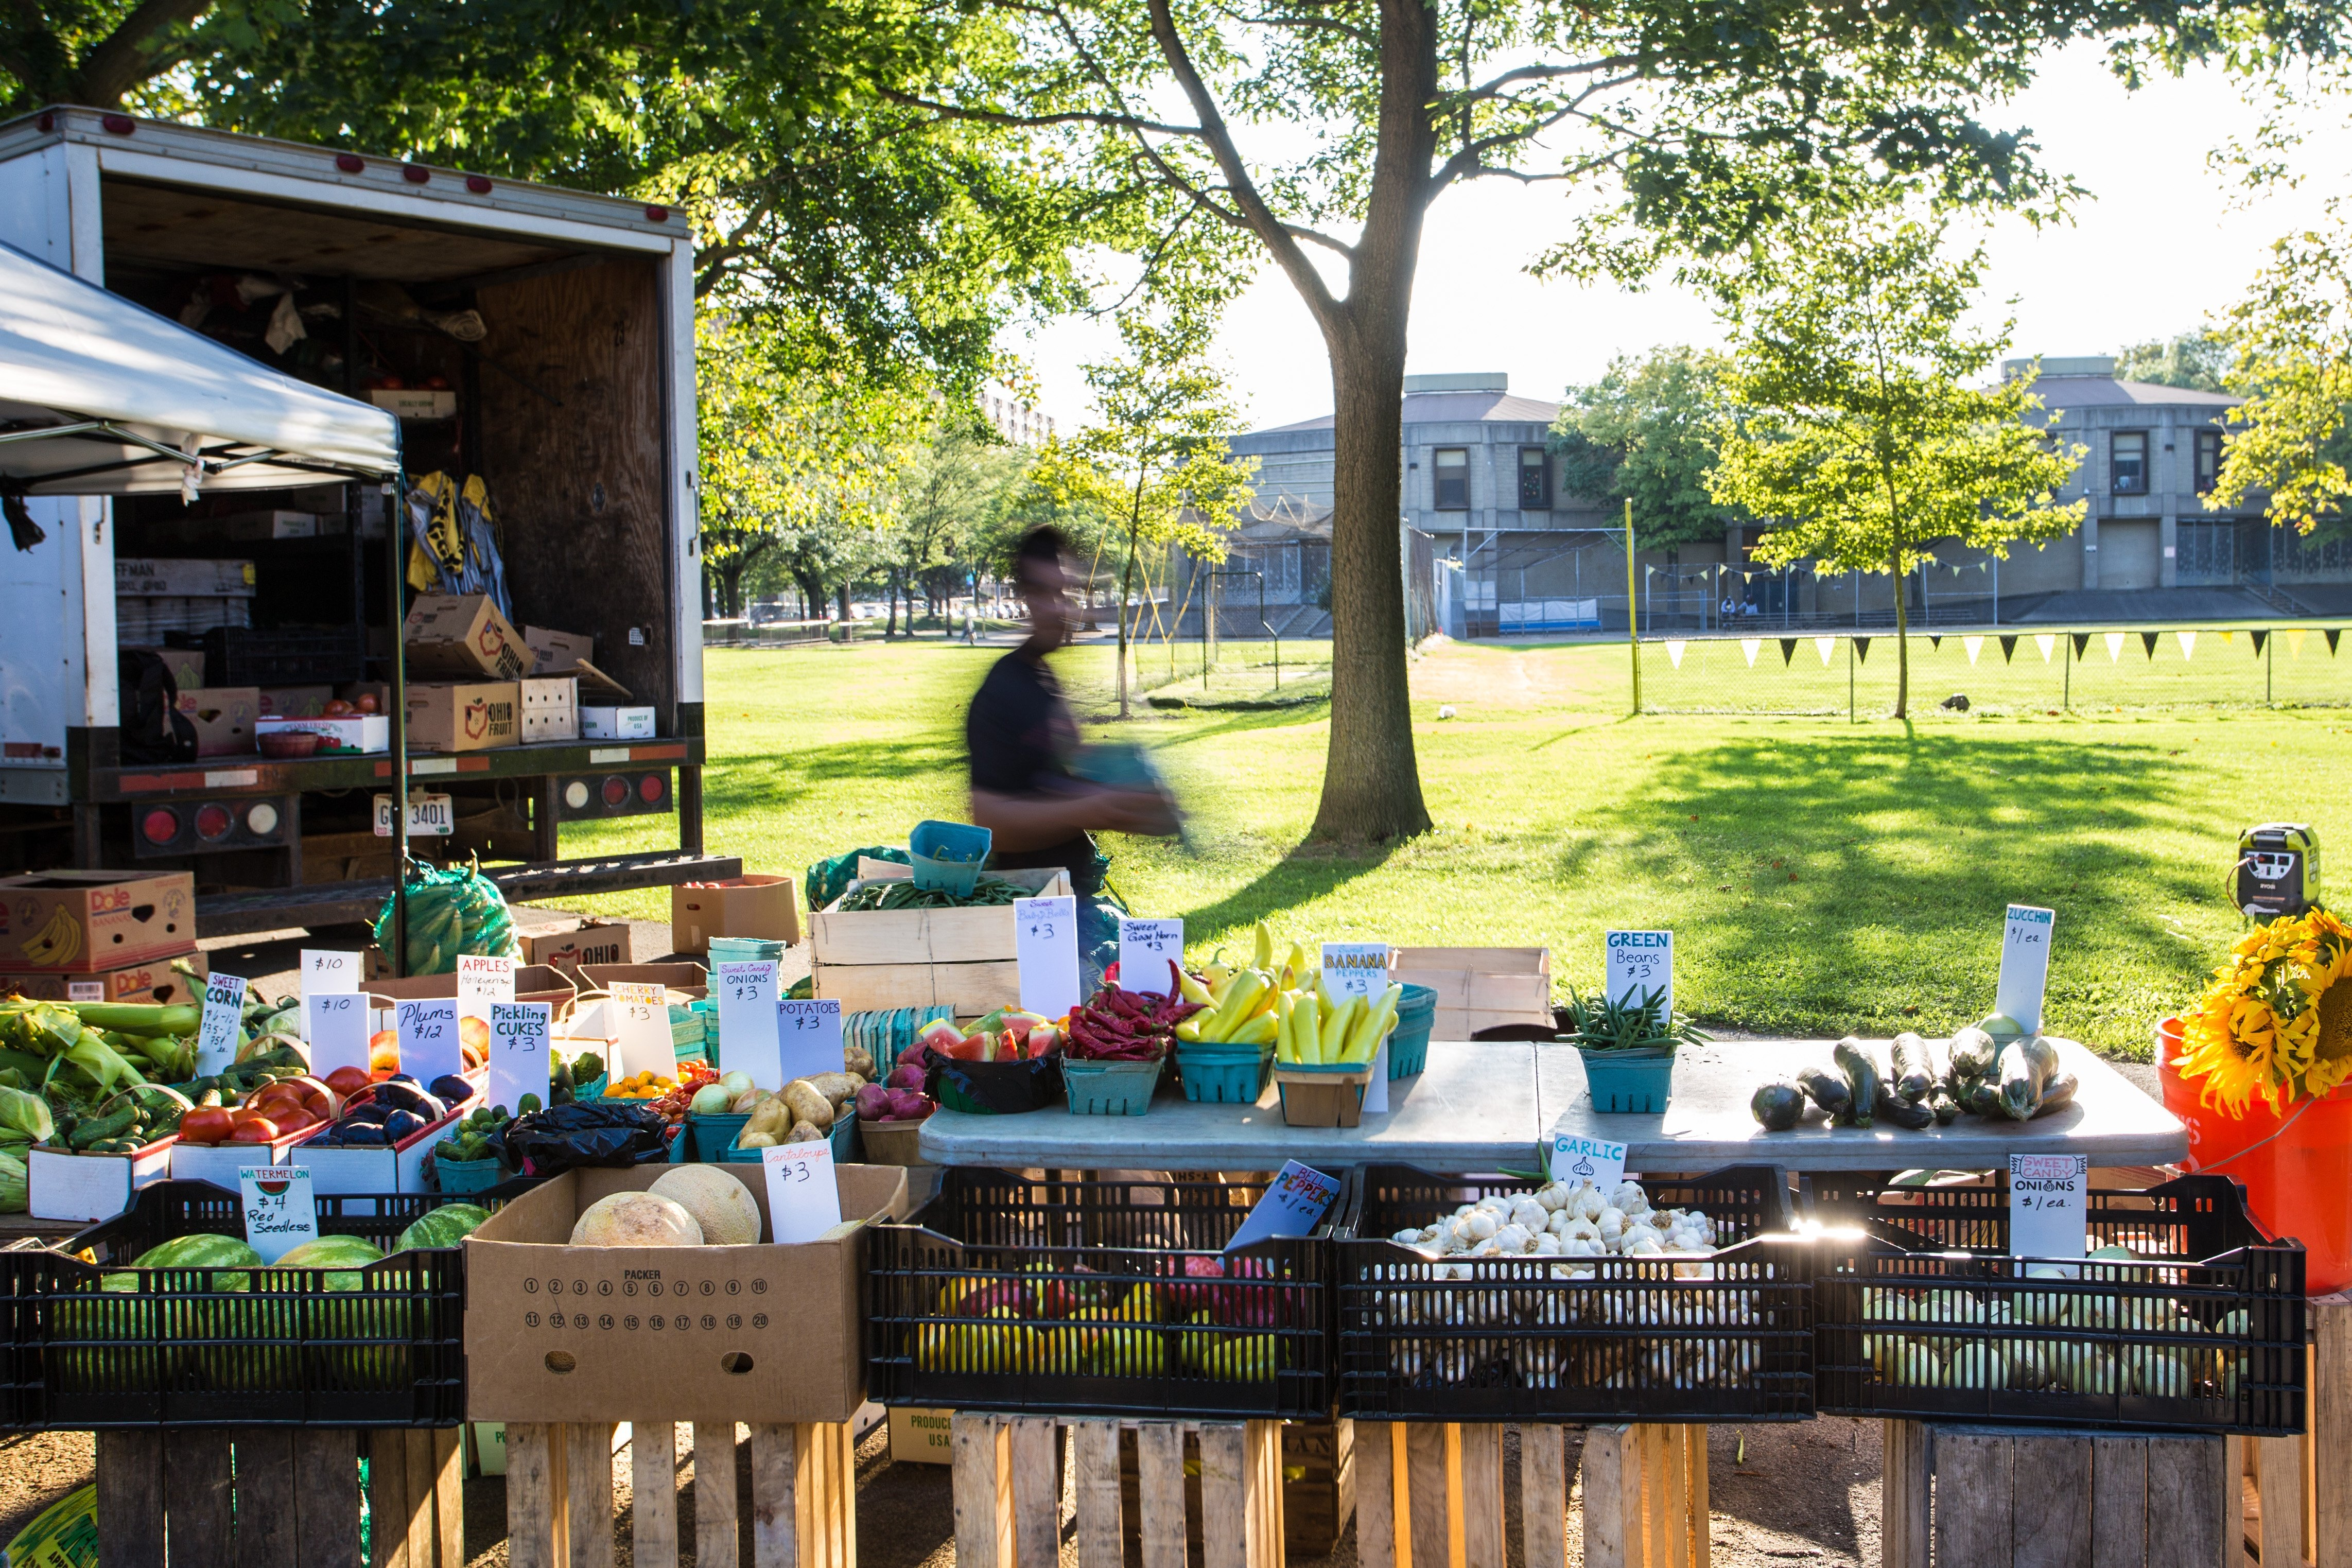 Image of a farmers' market in Allegheny Commons